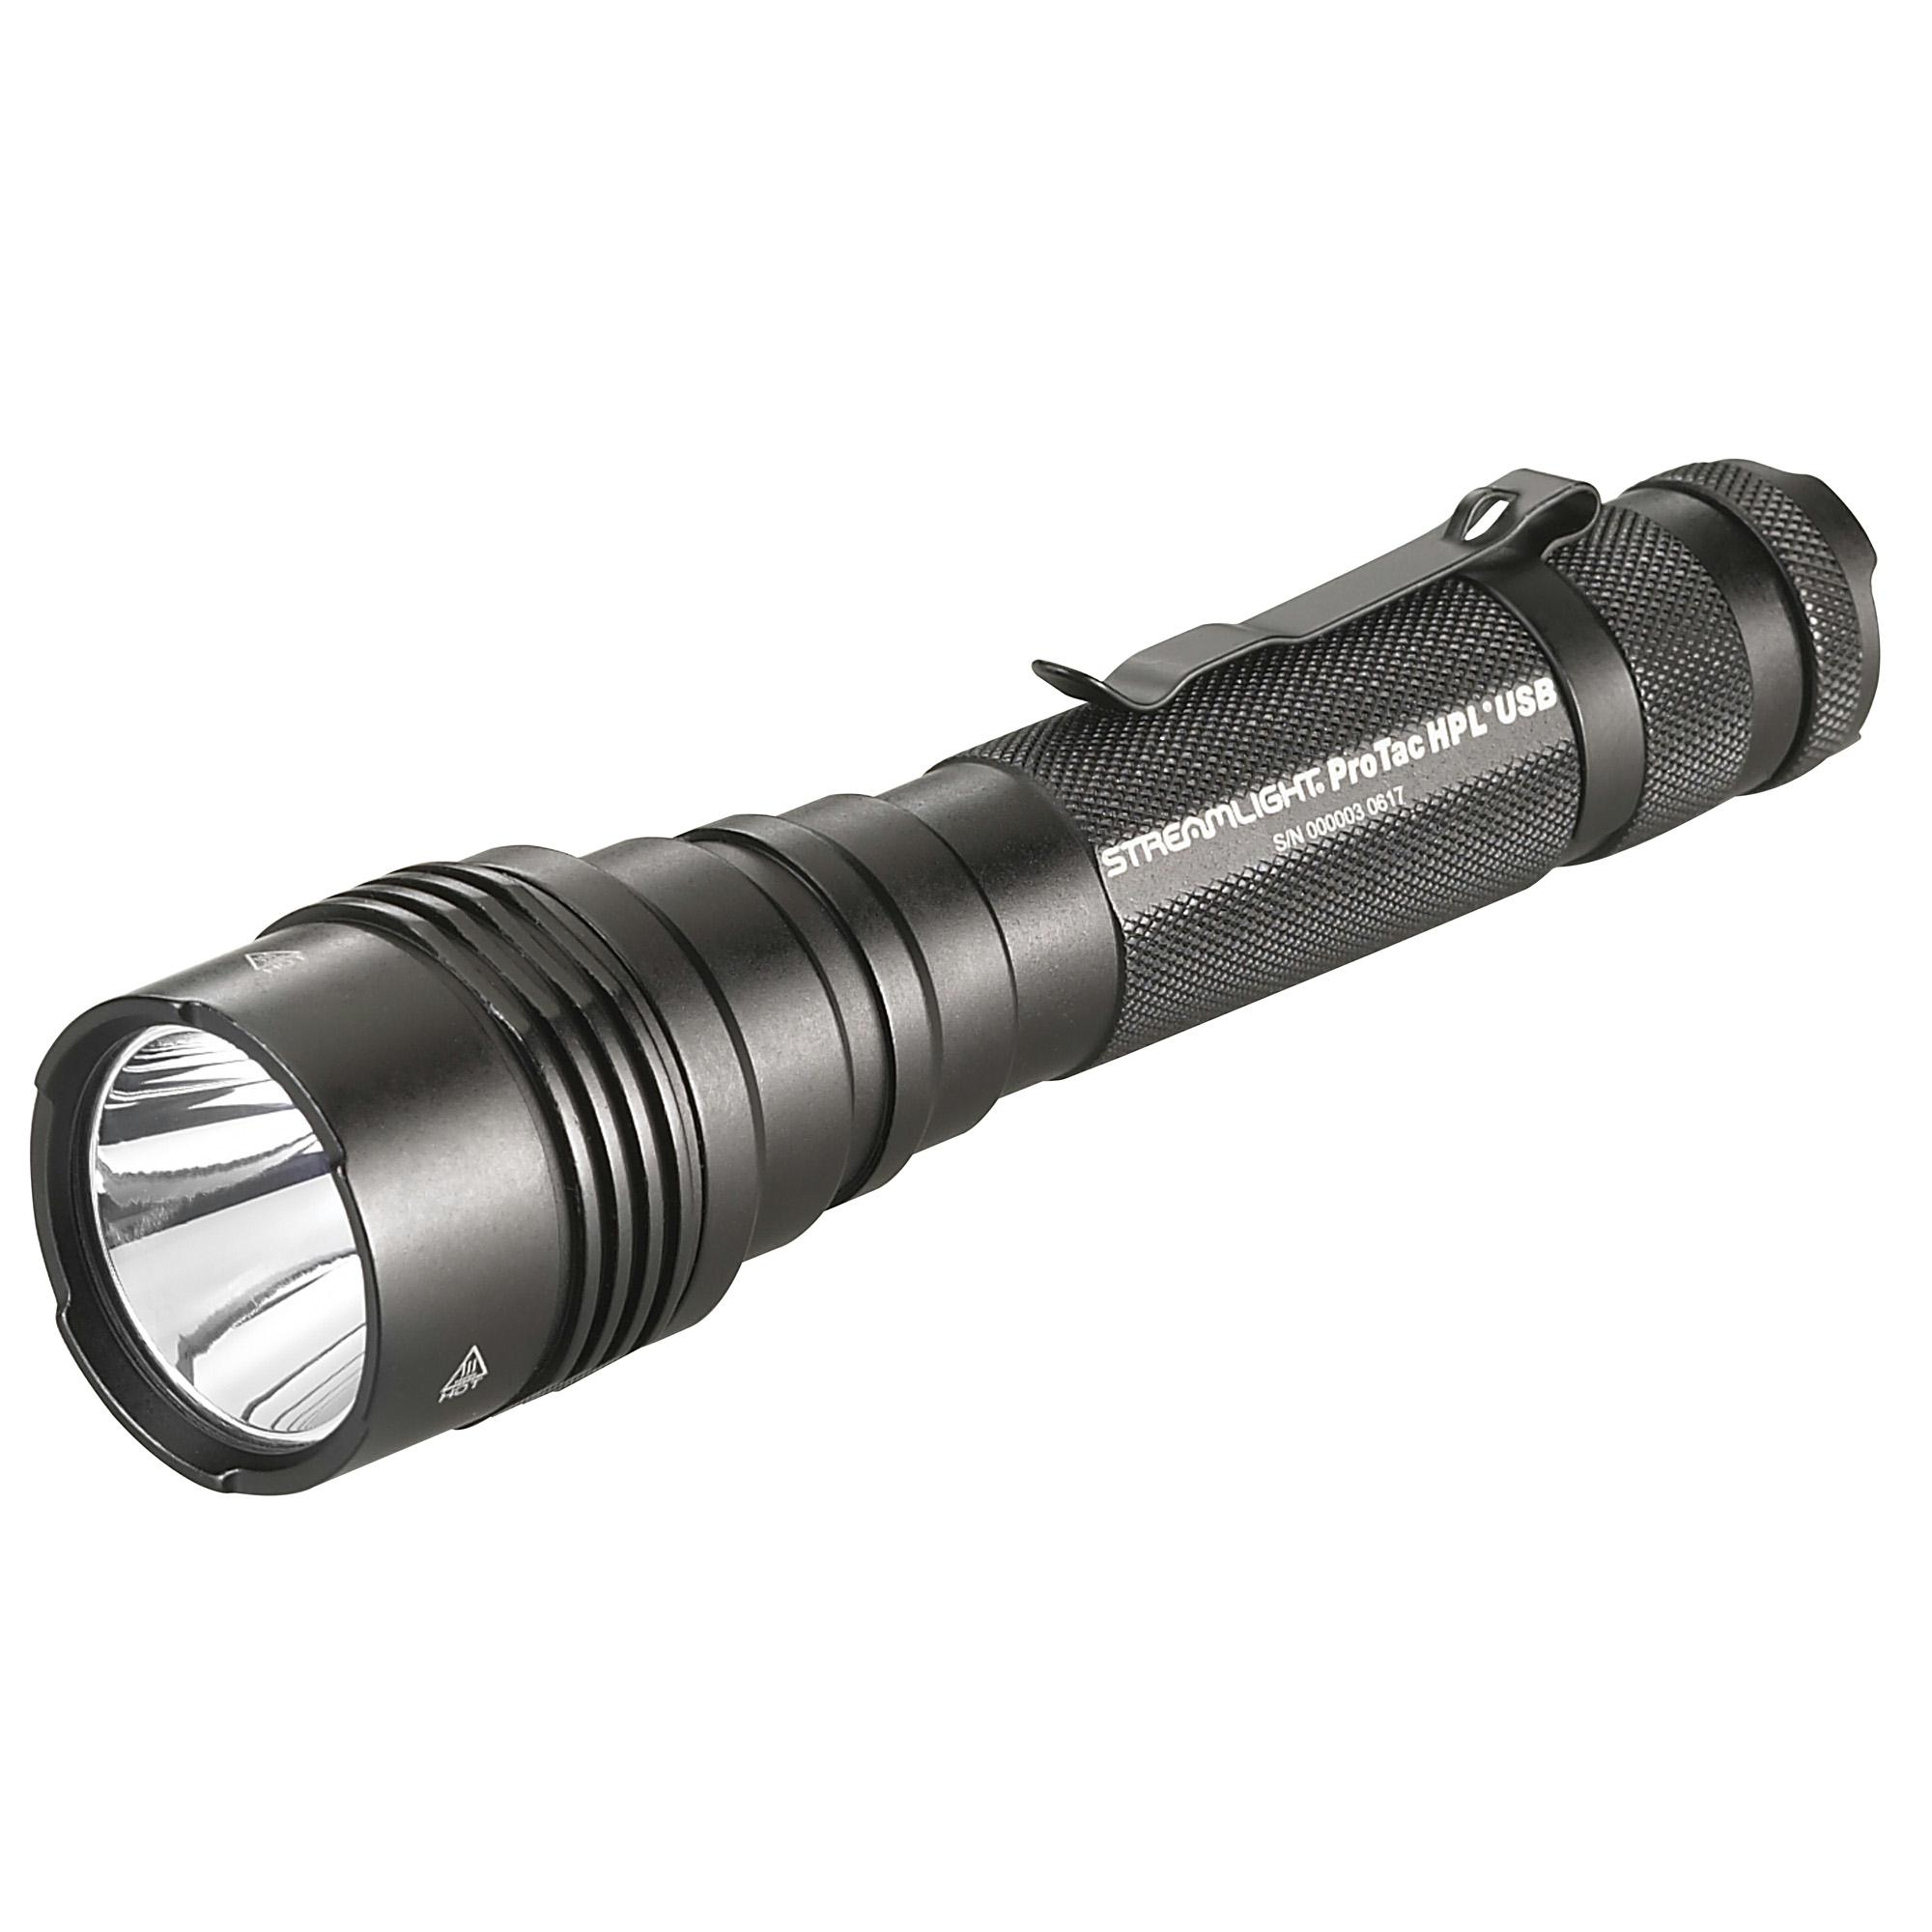 Streamlight Protac HPL 1000 Lumen Flashlight w/ USB Battery  Black